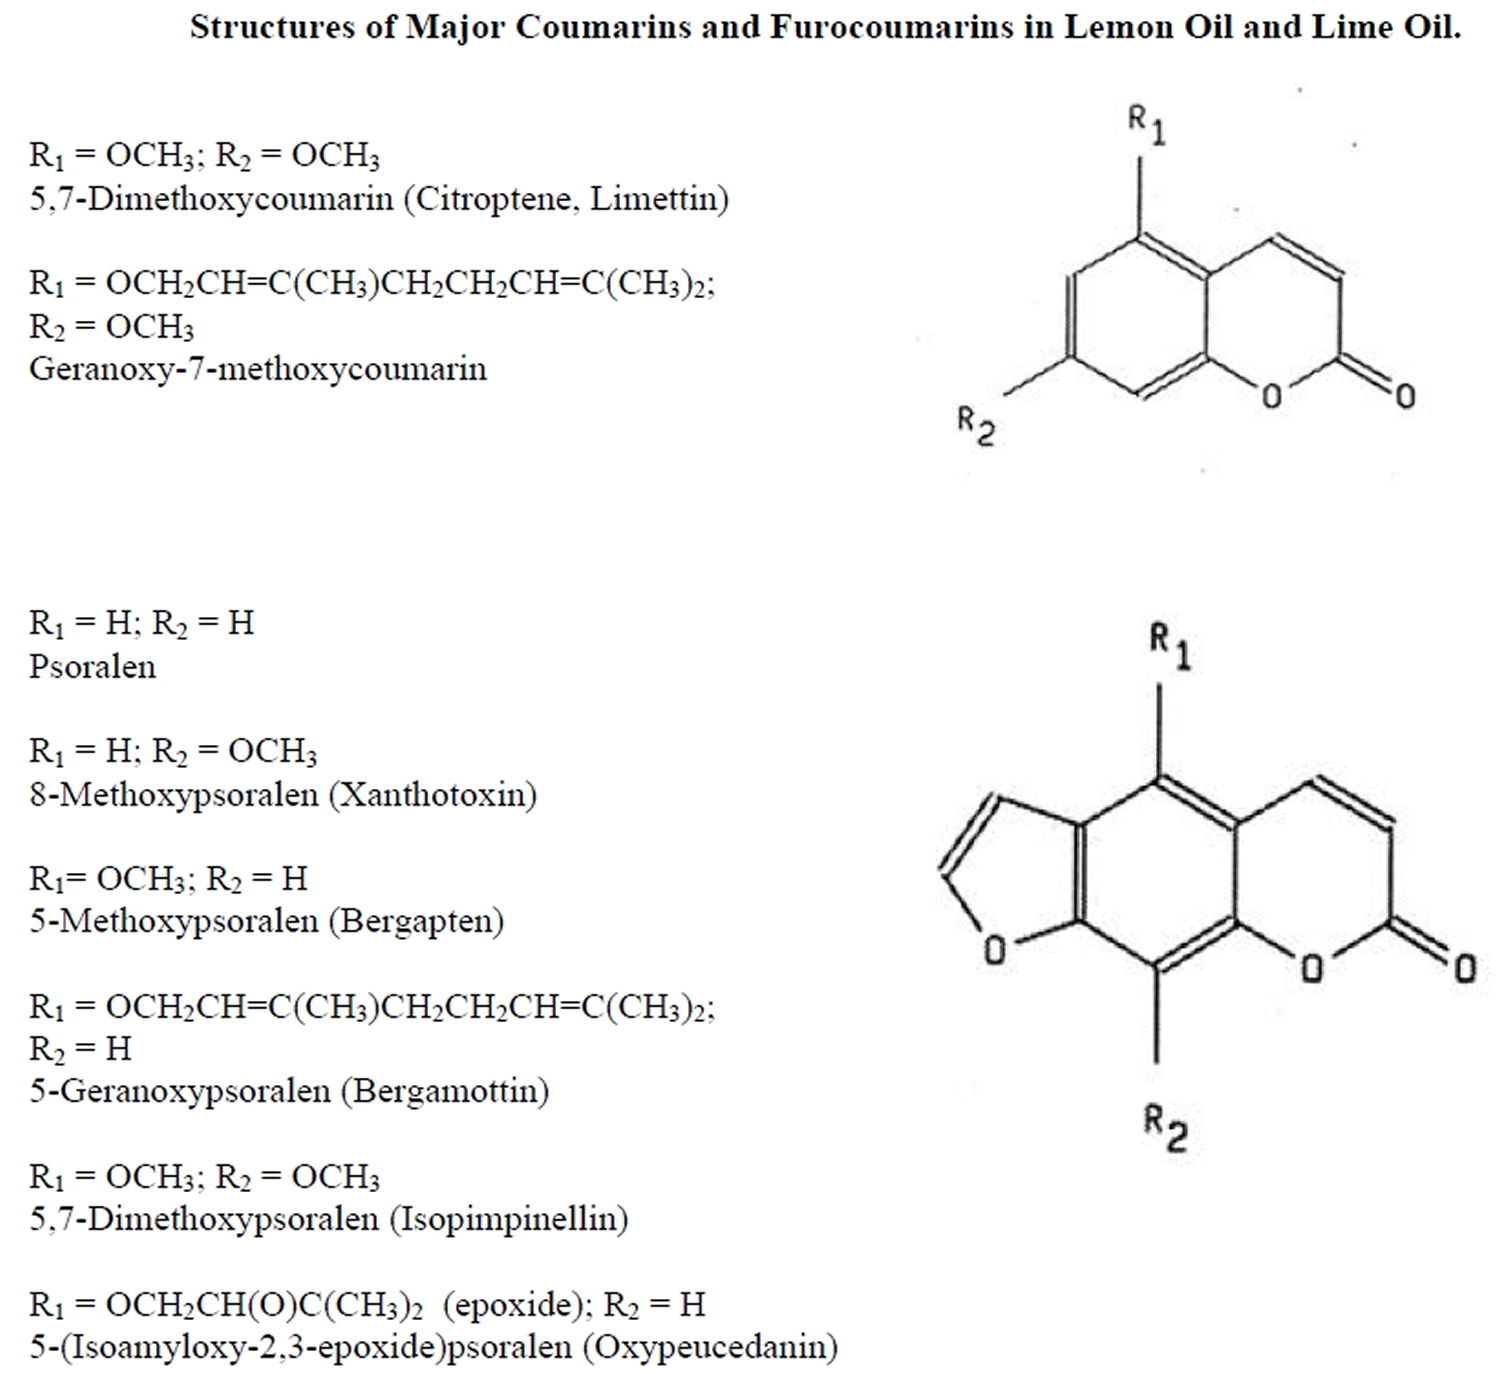 phototoxic components in lemon oil